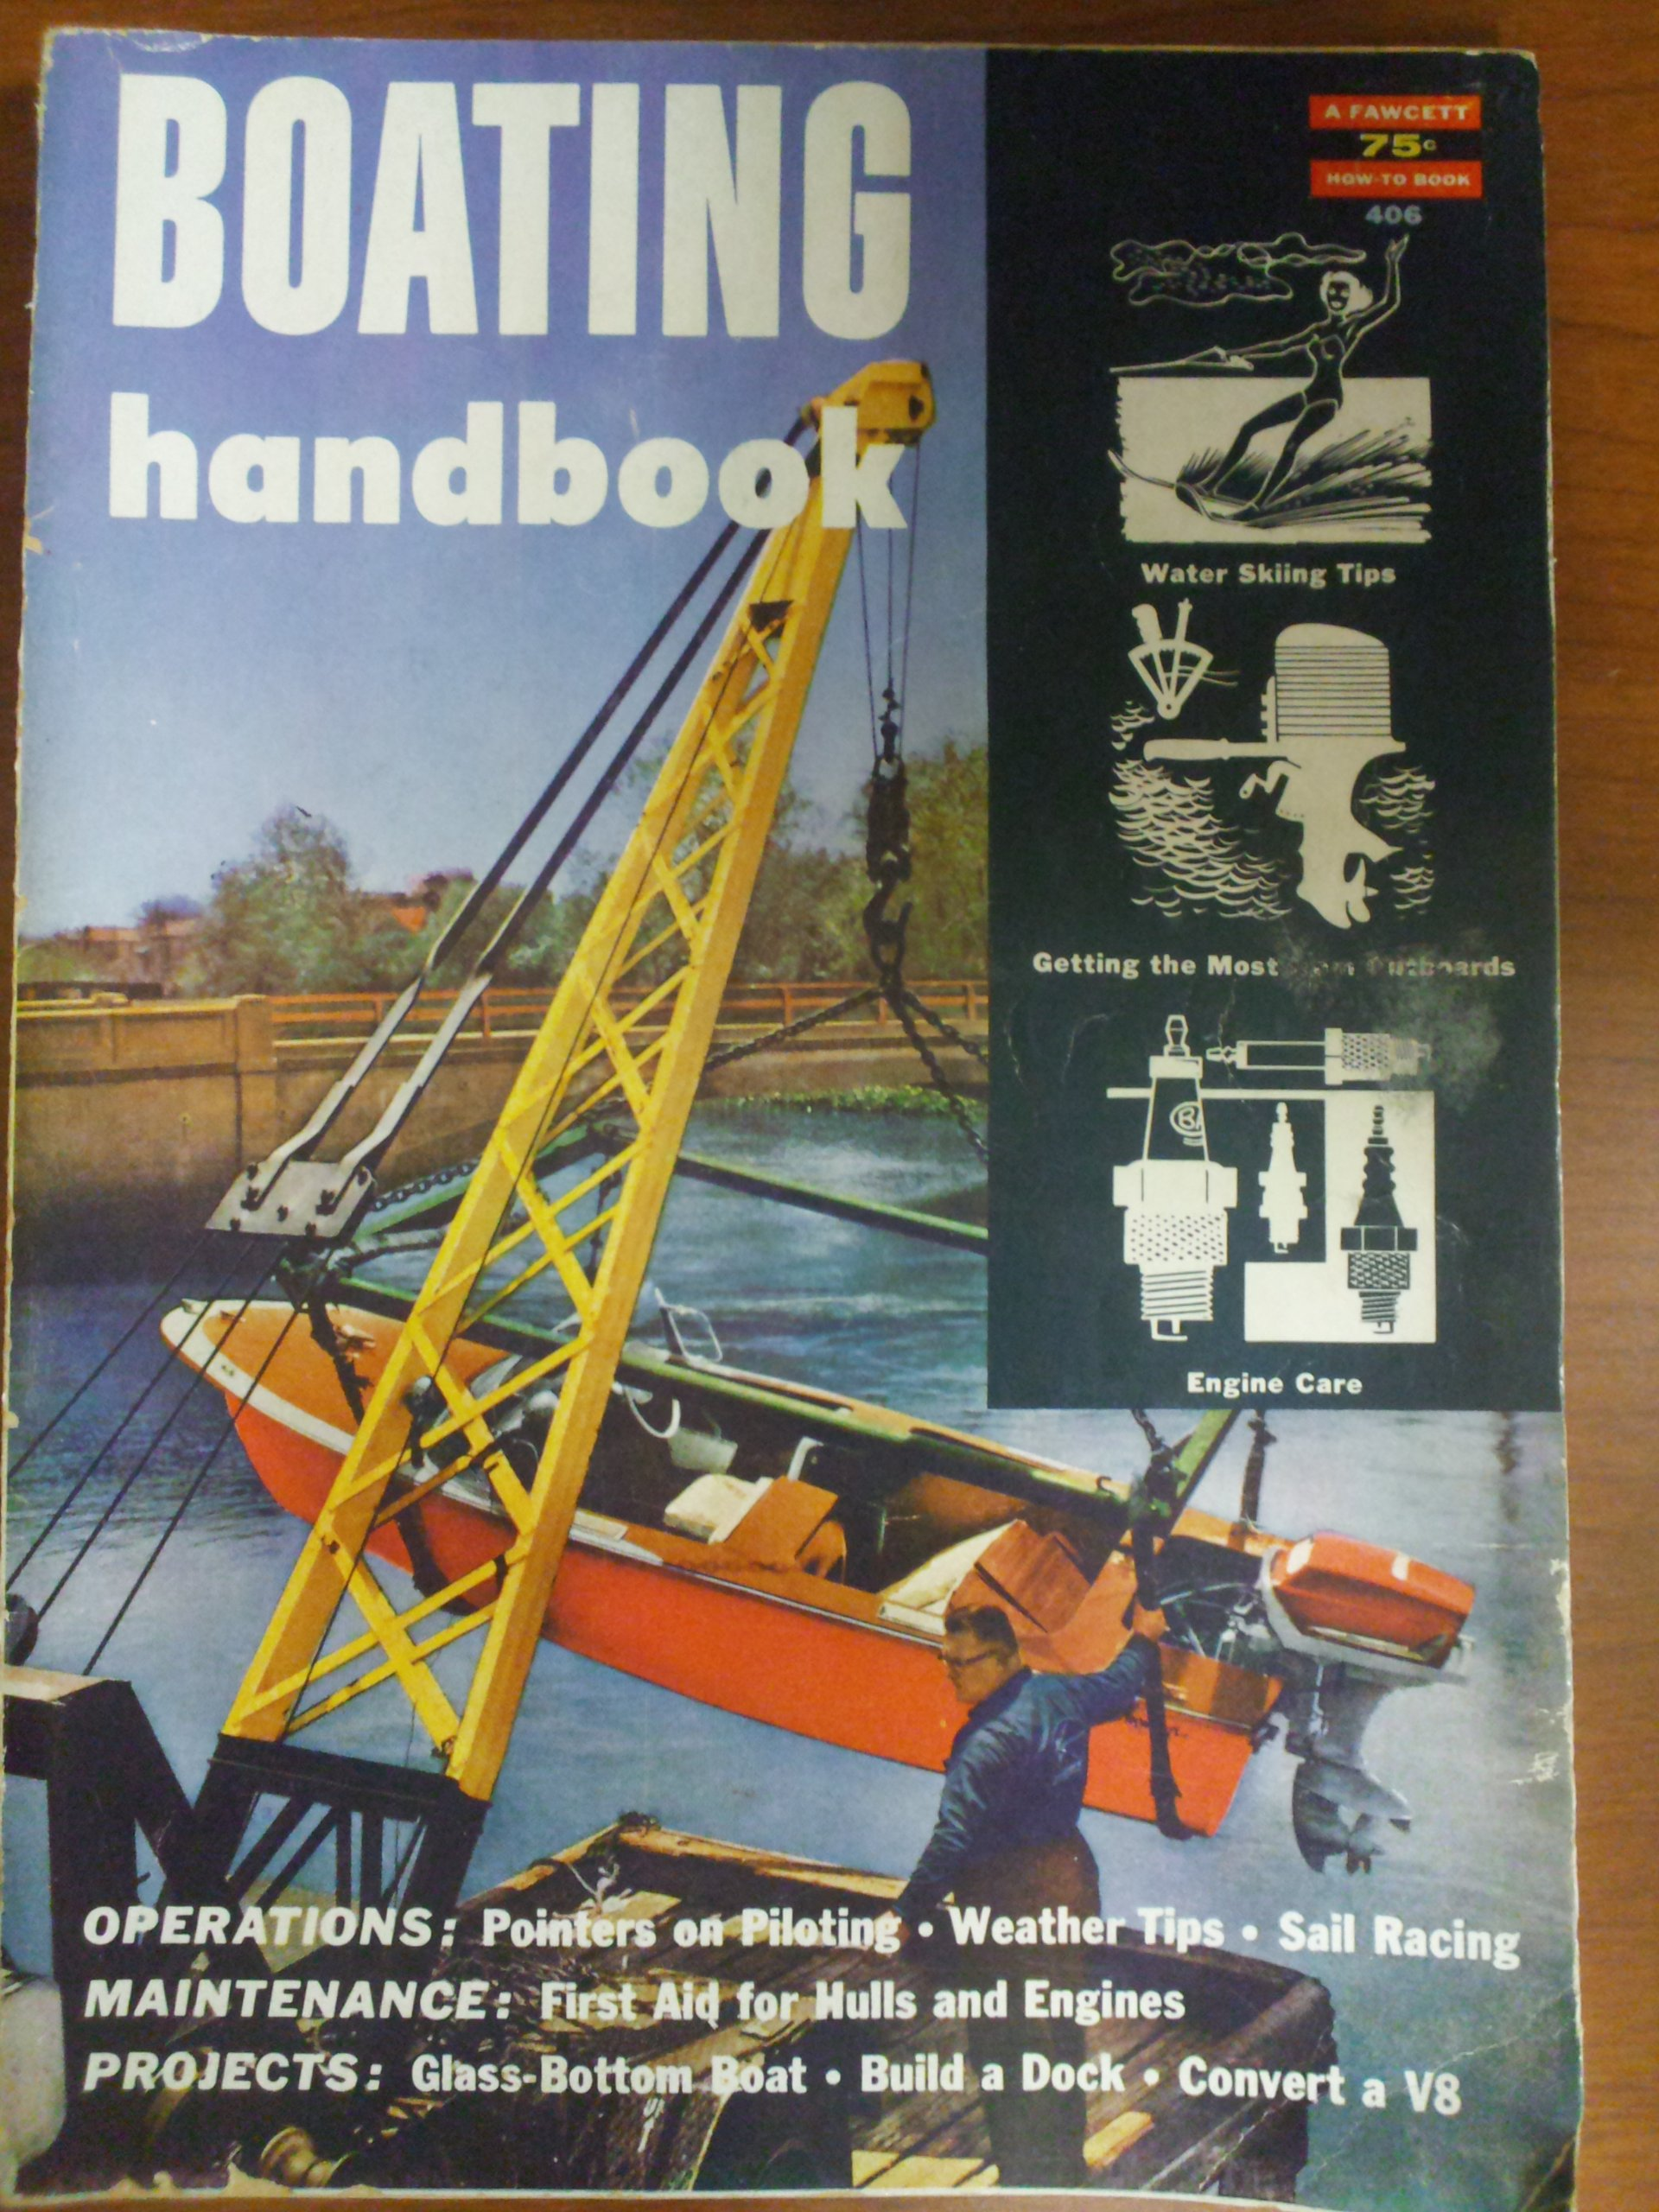 Boating handbook (Fawcett publications;no.406), Gubitz, Myron B